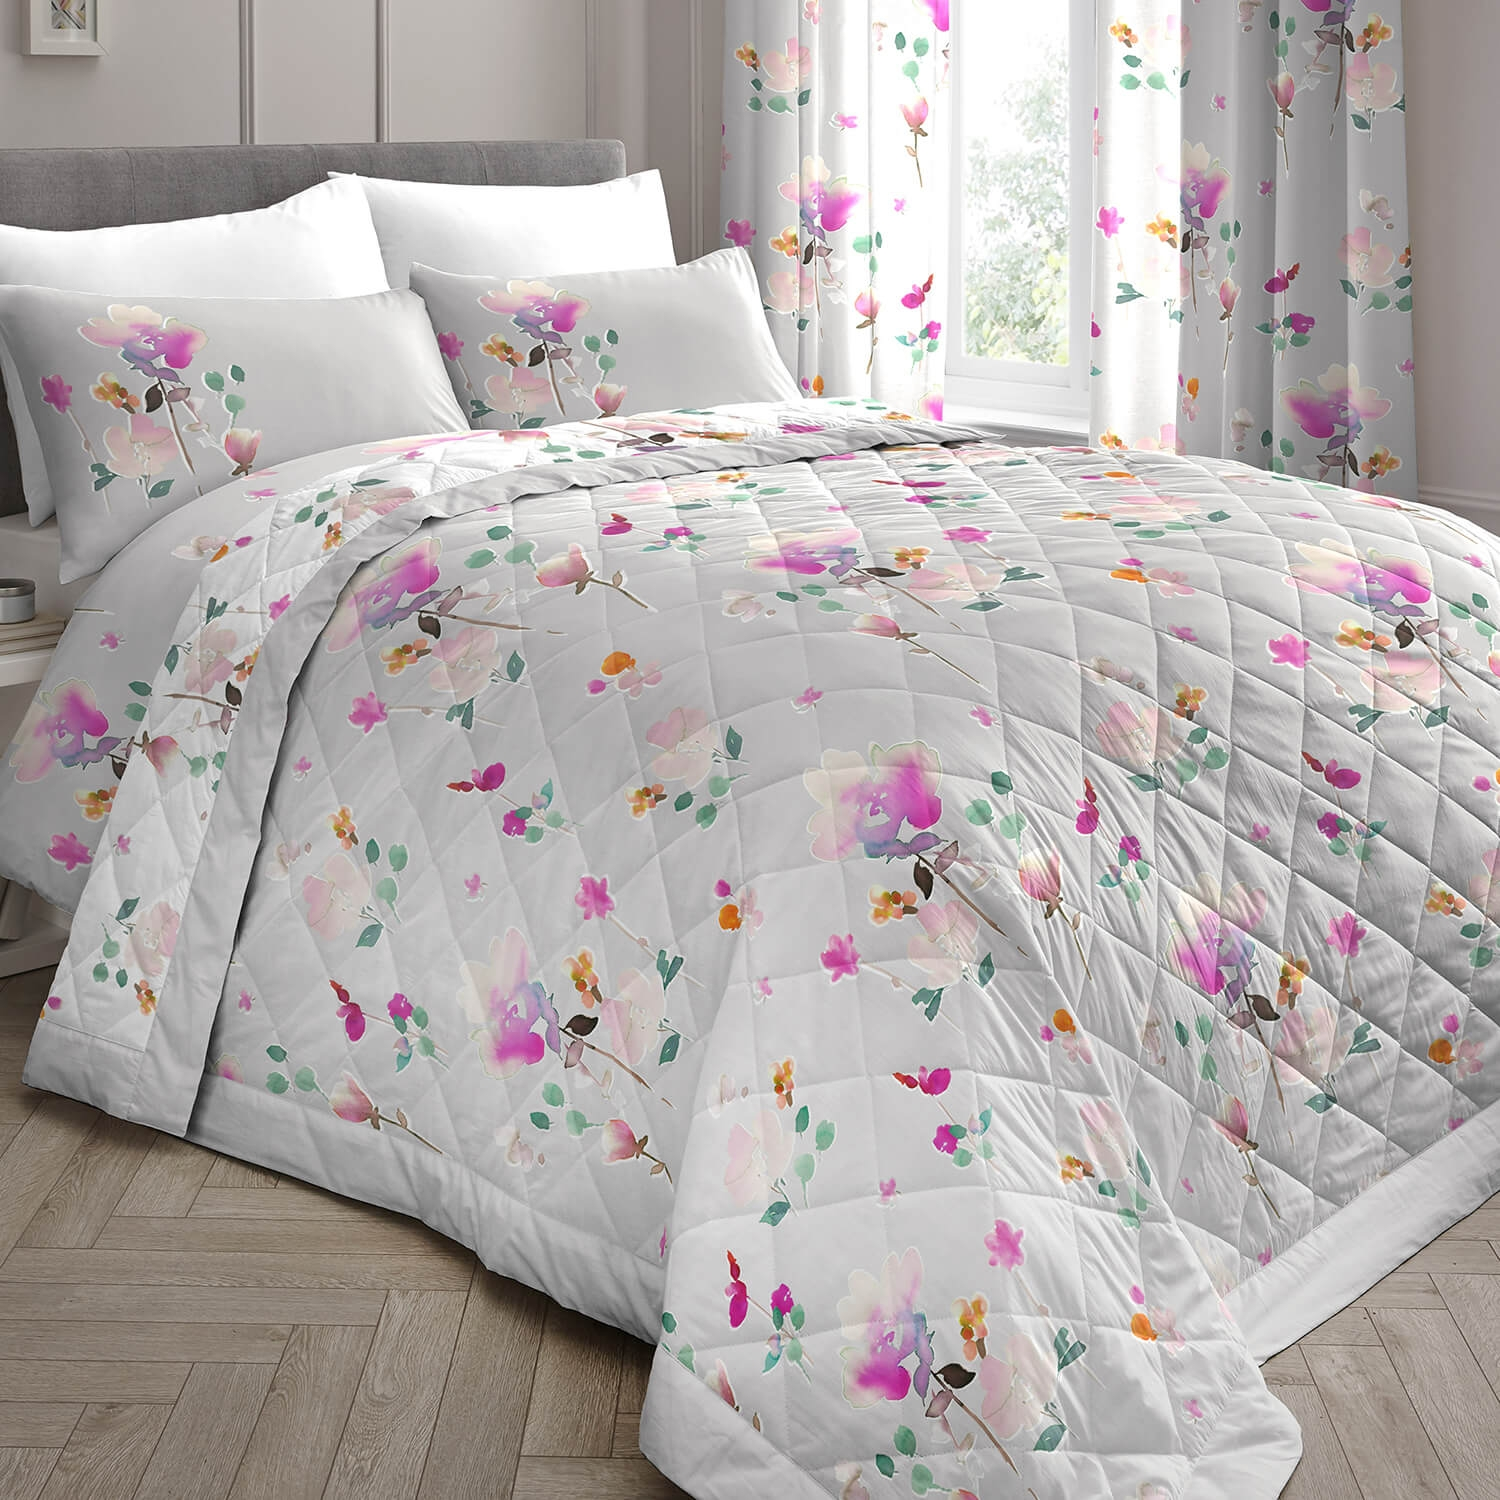 Image of Dreams & Drapes Jessica Quilted Bedspread, Pink